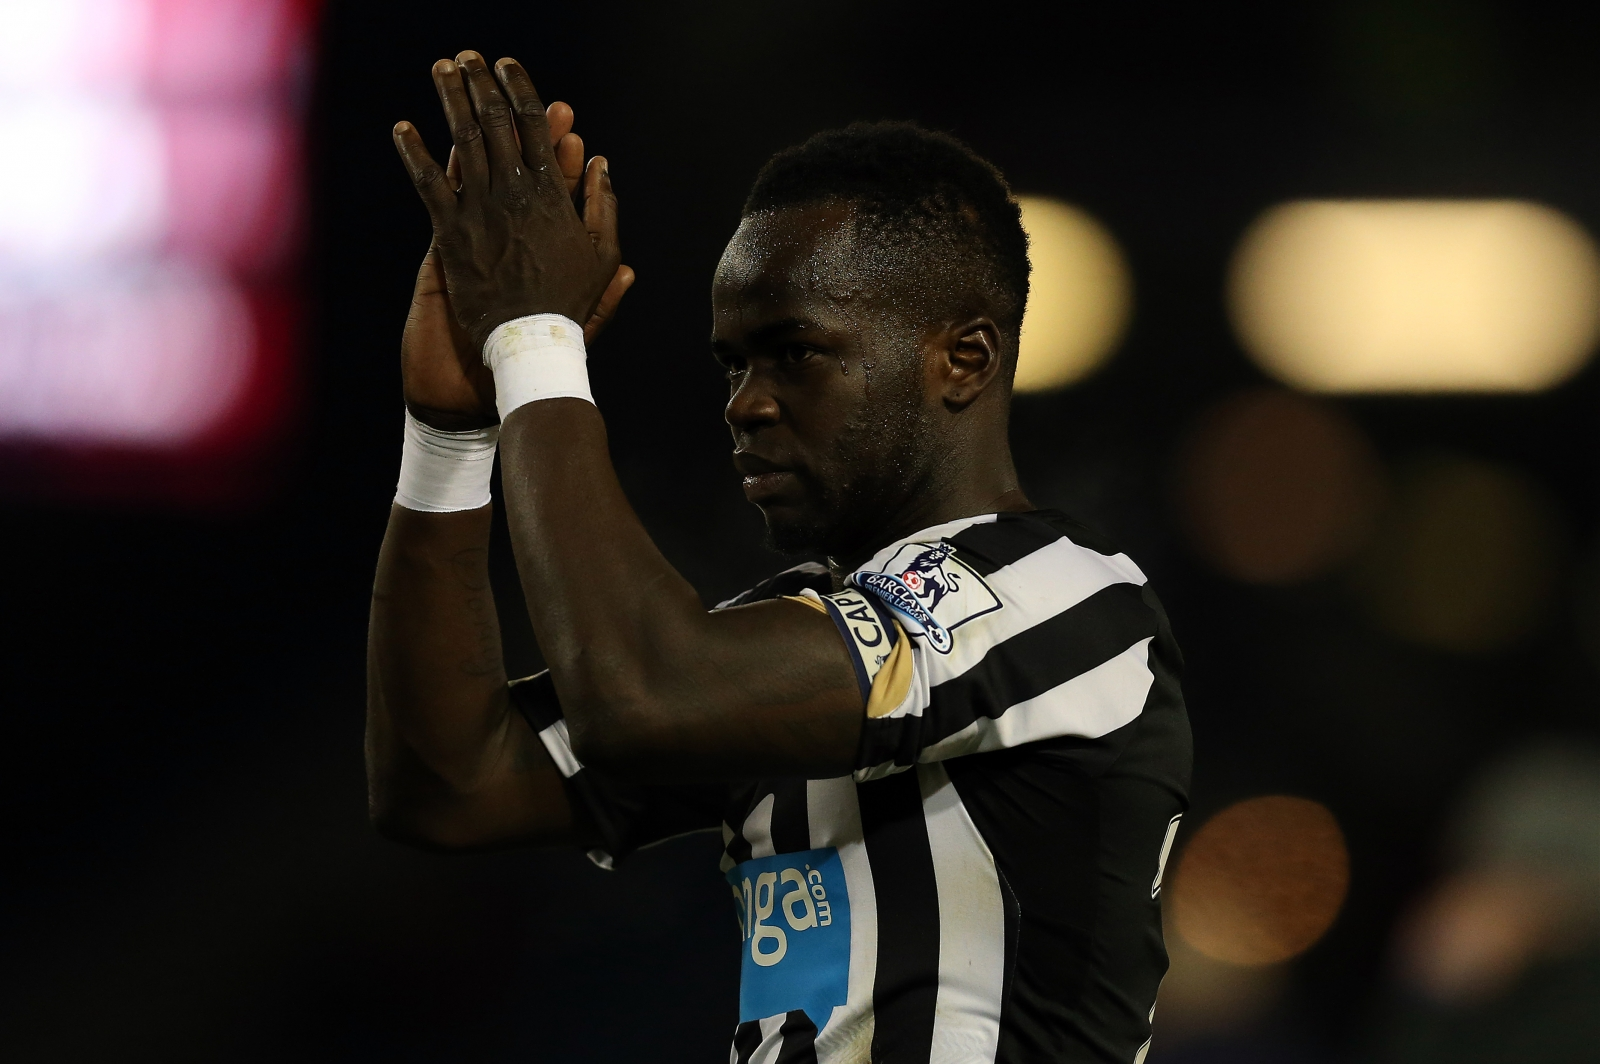 Tributes pour in for Tiote after tragic training ground death in China